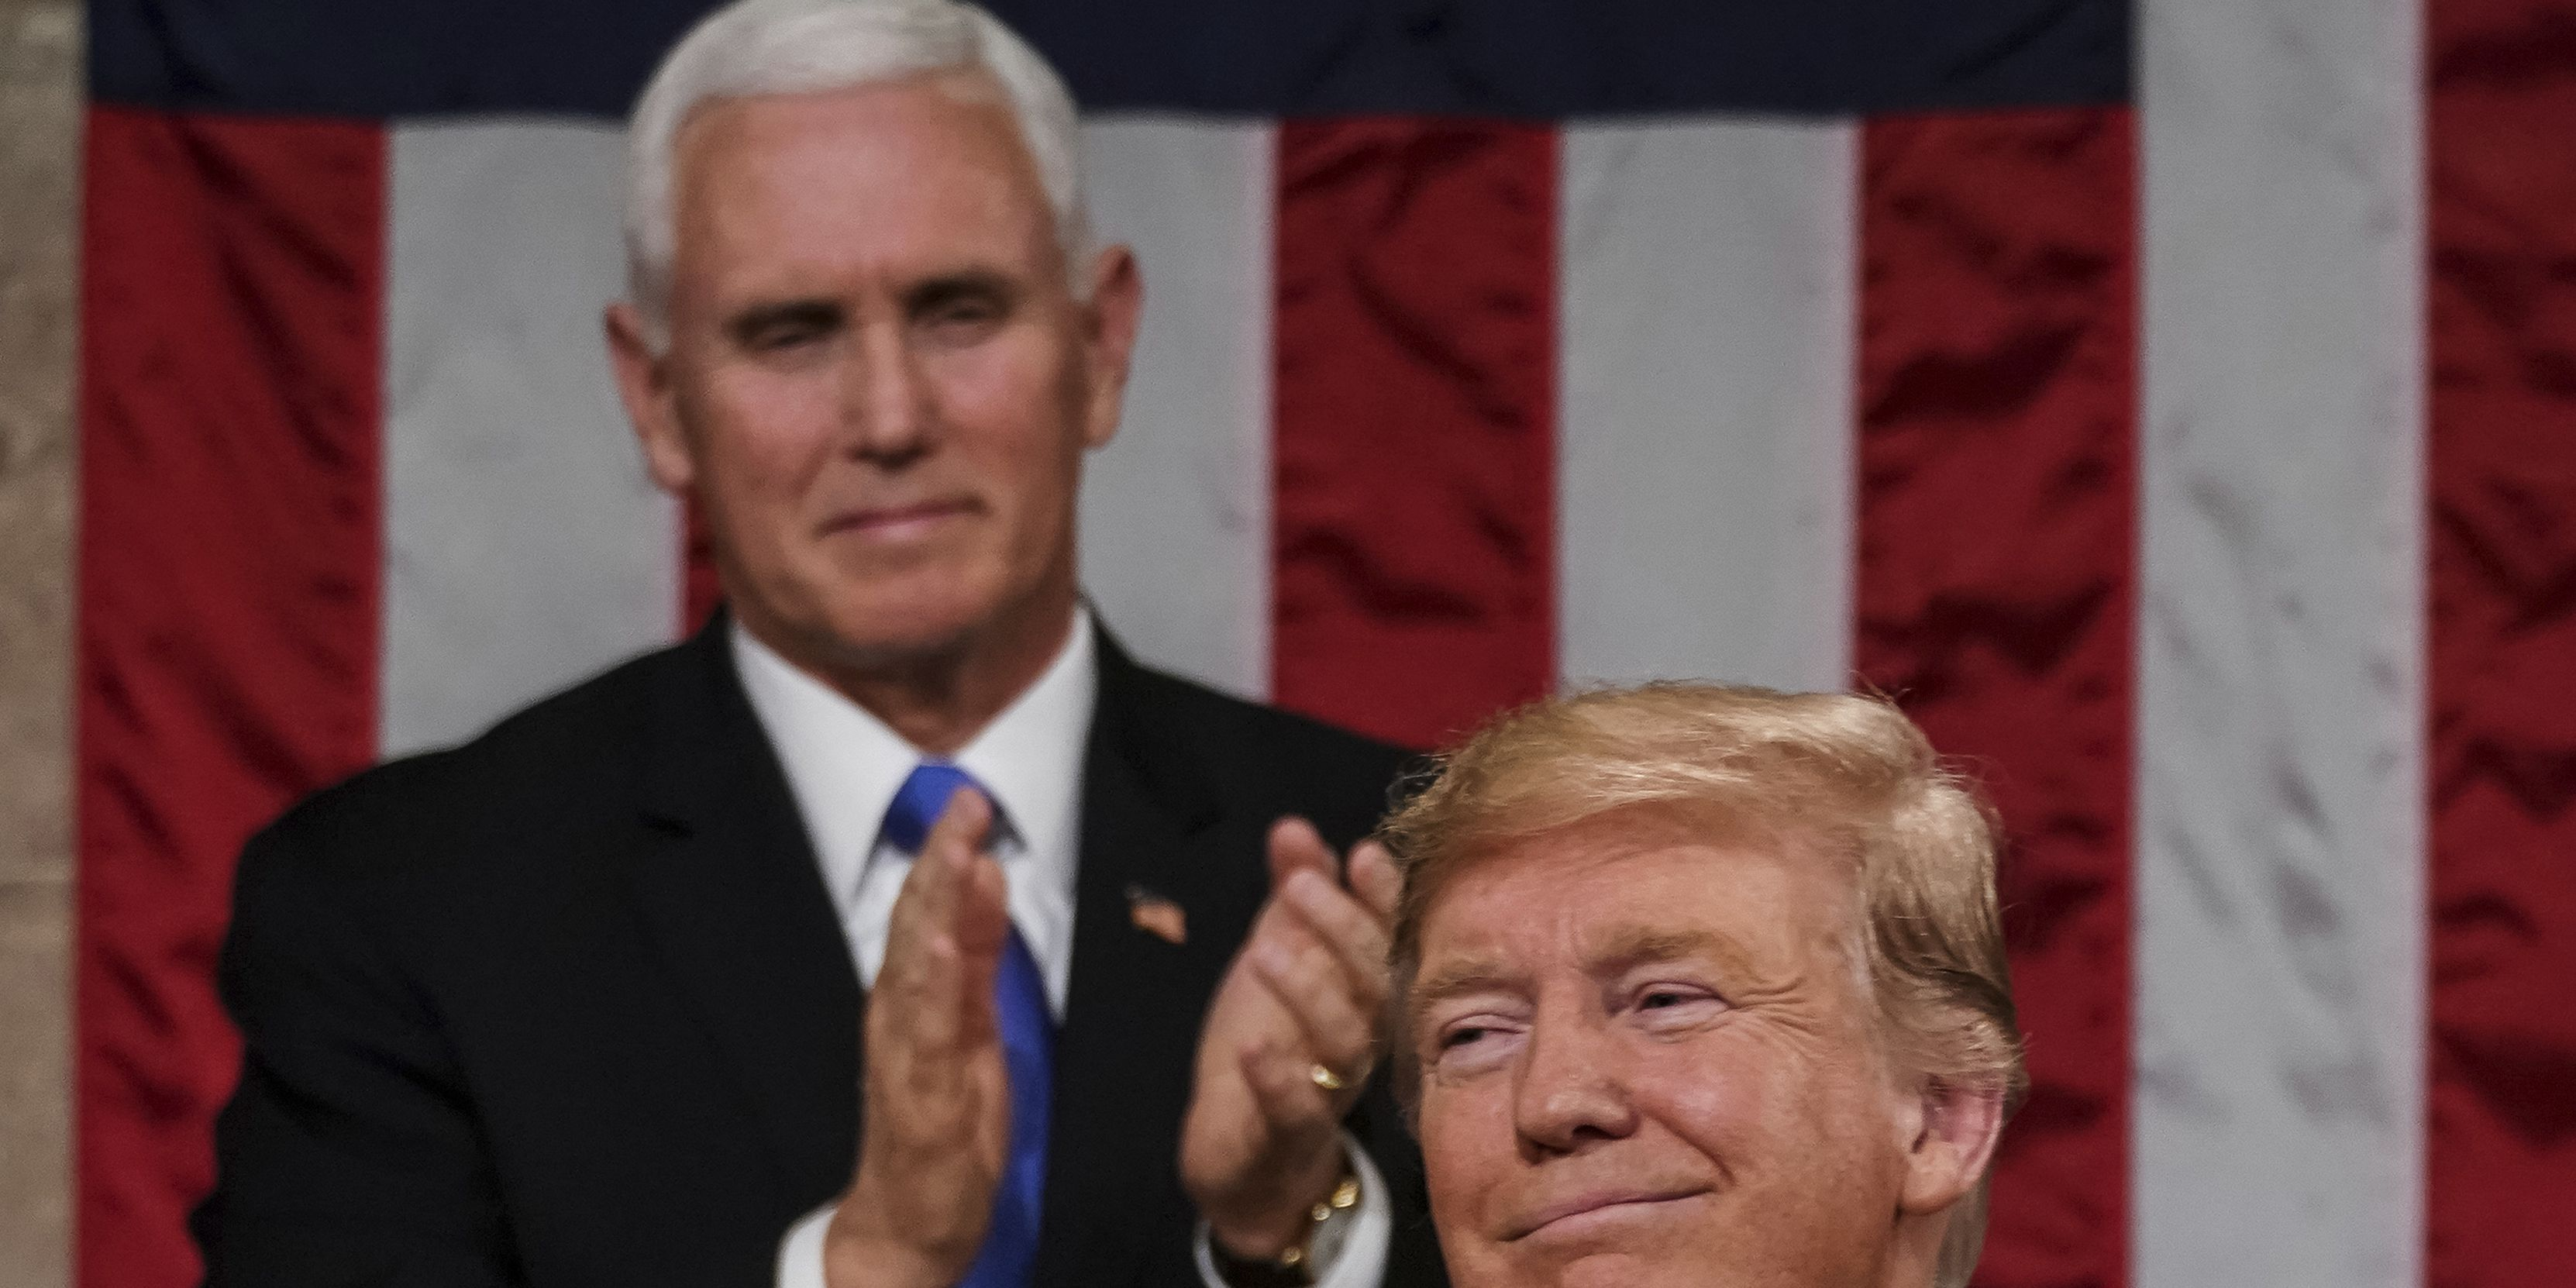 Trump touts economy, warns of border danger in State of the Union; Abrams says 'we owe more' to working class in Dem. response